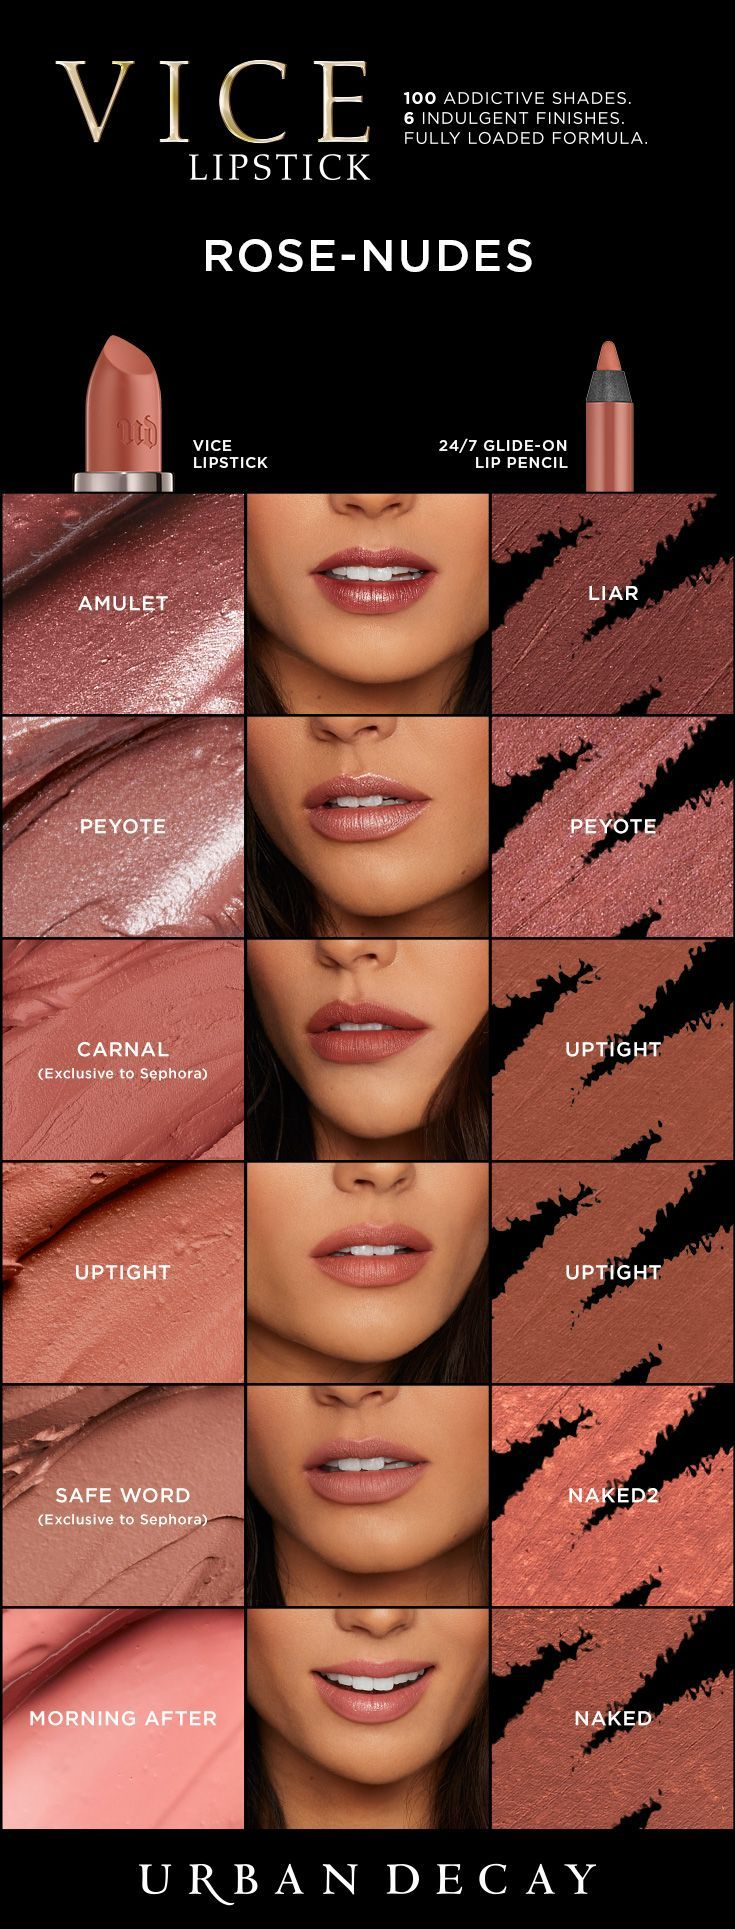 Find the perfect rose nude to match any look! From matte to metallized, pick it up in your favorite finish now at urbandecay.com.